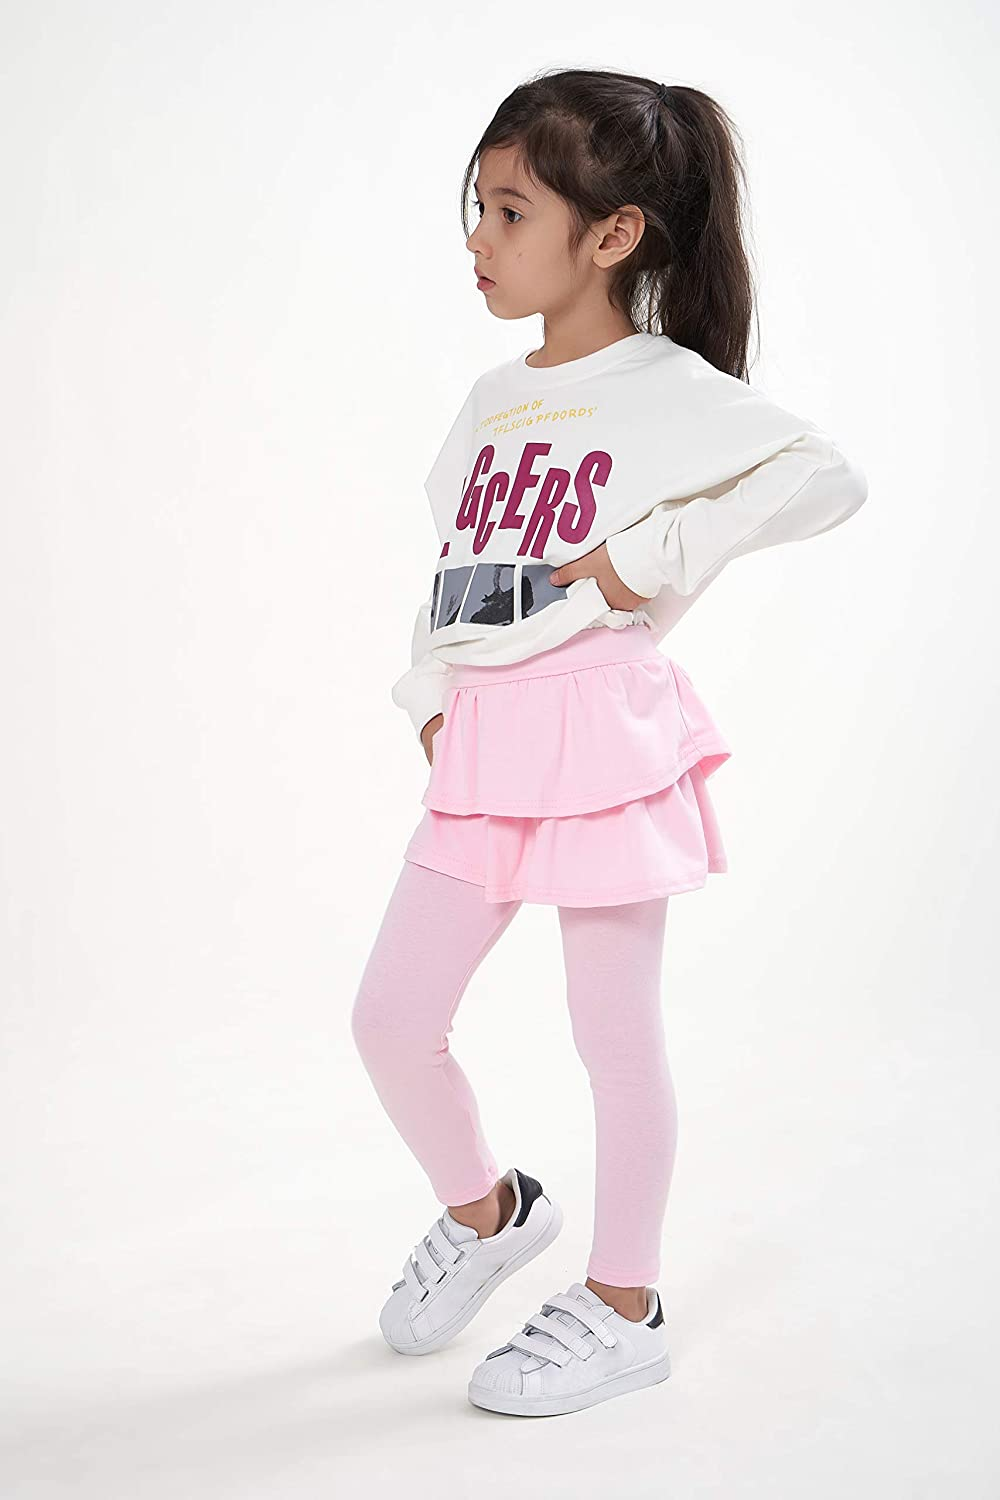 Adorel Girls Leggings with Ruffle Skirt Cotton Solid